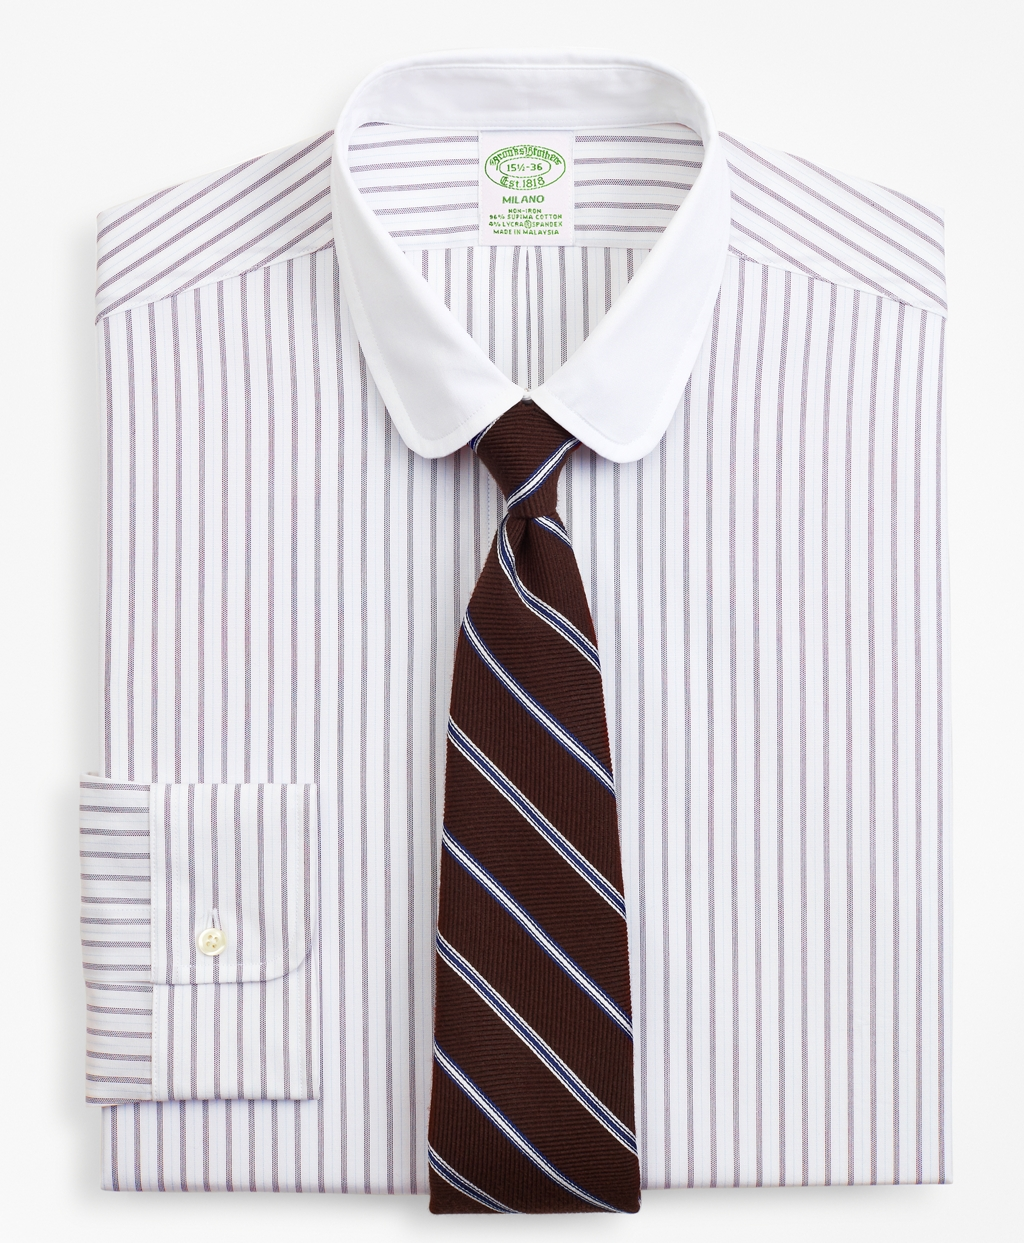 Mens Vintage Shirts – Casual, Dress, T-shirts, Polos Brooks Brothers Mens Stretch Milano Slim-Fit Dress Shirt Dotted-Stripe $98.00 AT vintagedancer.com